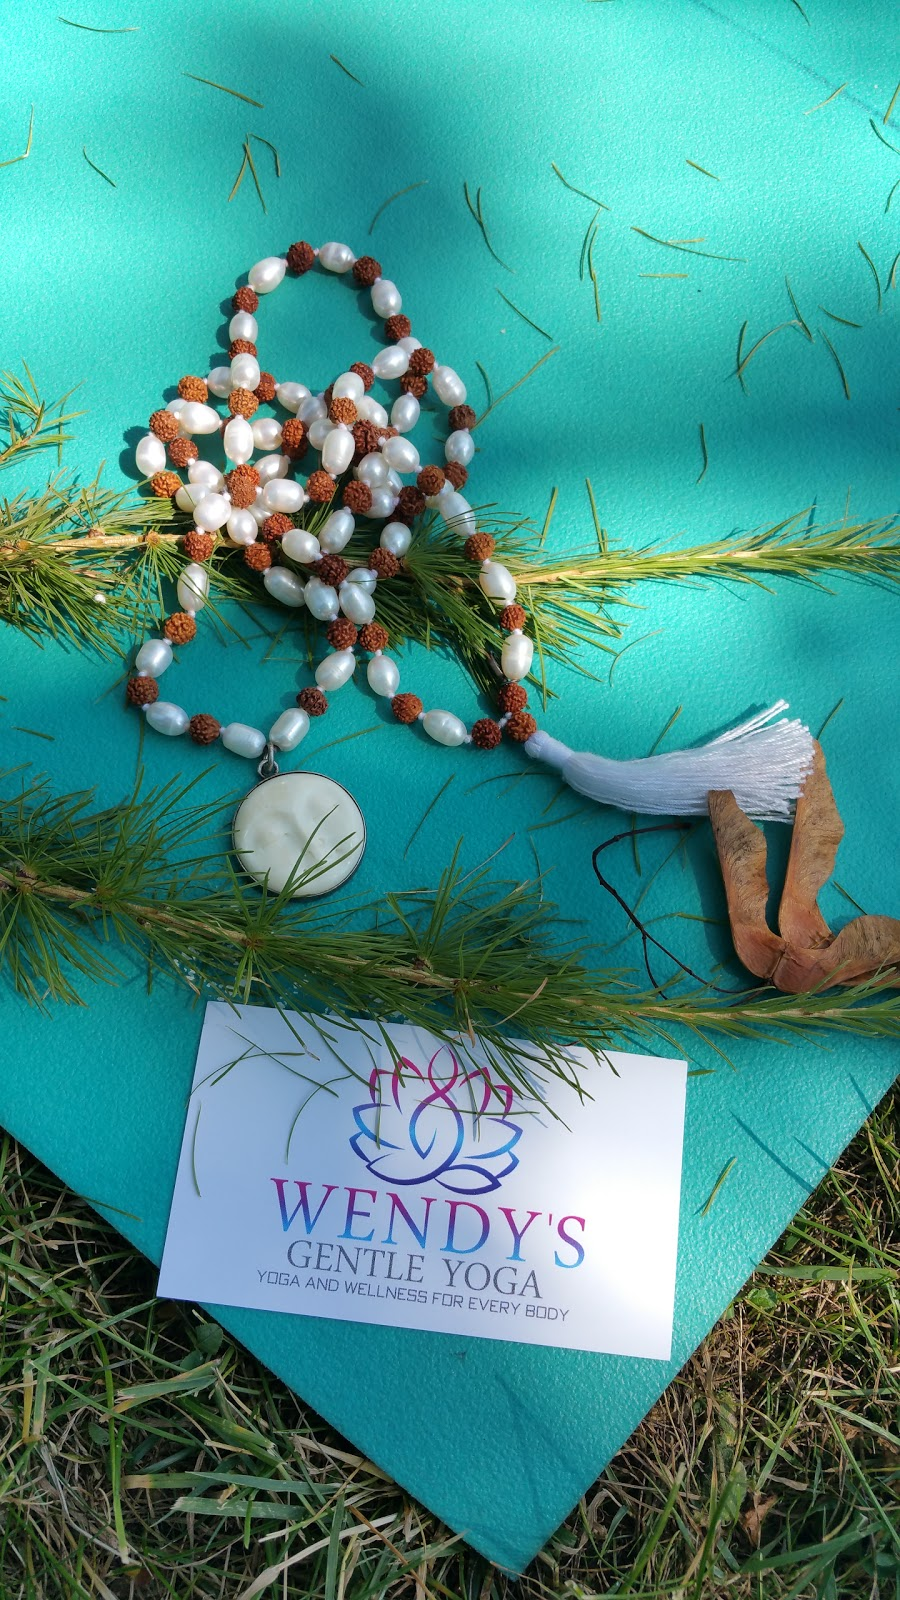 Wendys Gentle Yoga | gym | 1050 Grandview St N, Oshawa, ON L1K 2L3, Canada | 2899273340 OR +1 289-927-3340